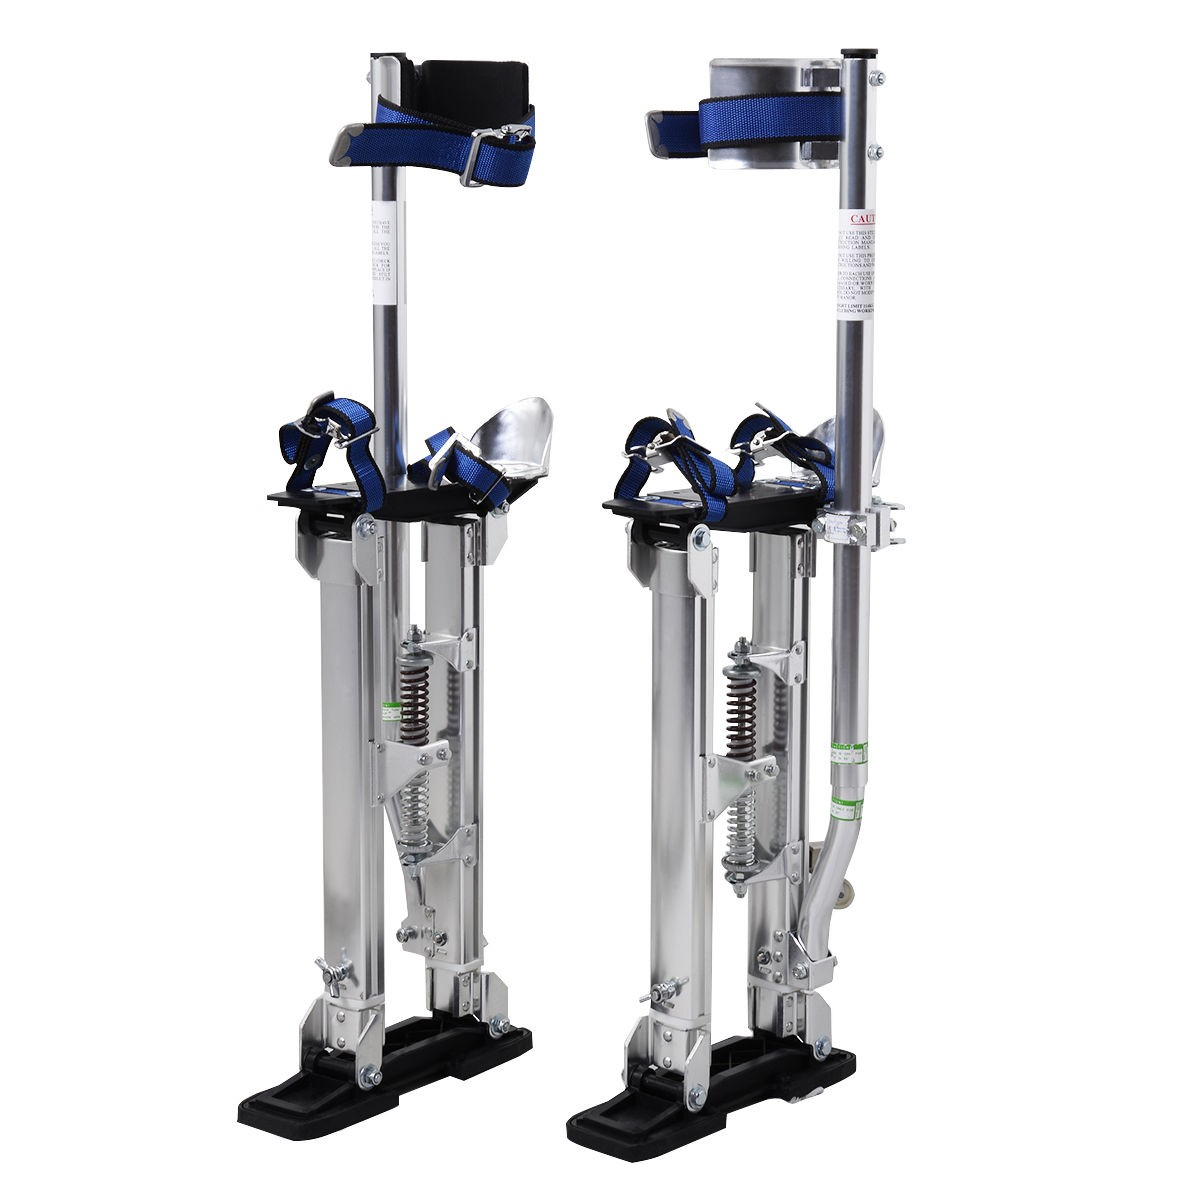 24-40 Inch Drywall Stilts Aluminum Tool Stilt For Painting Painter Taping by Apontus